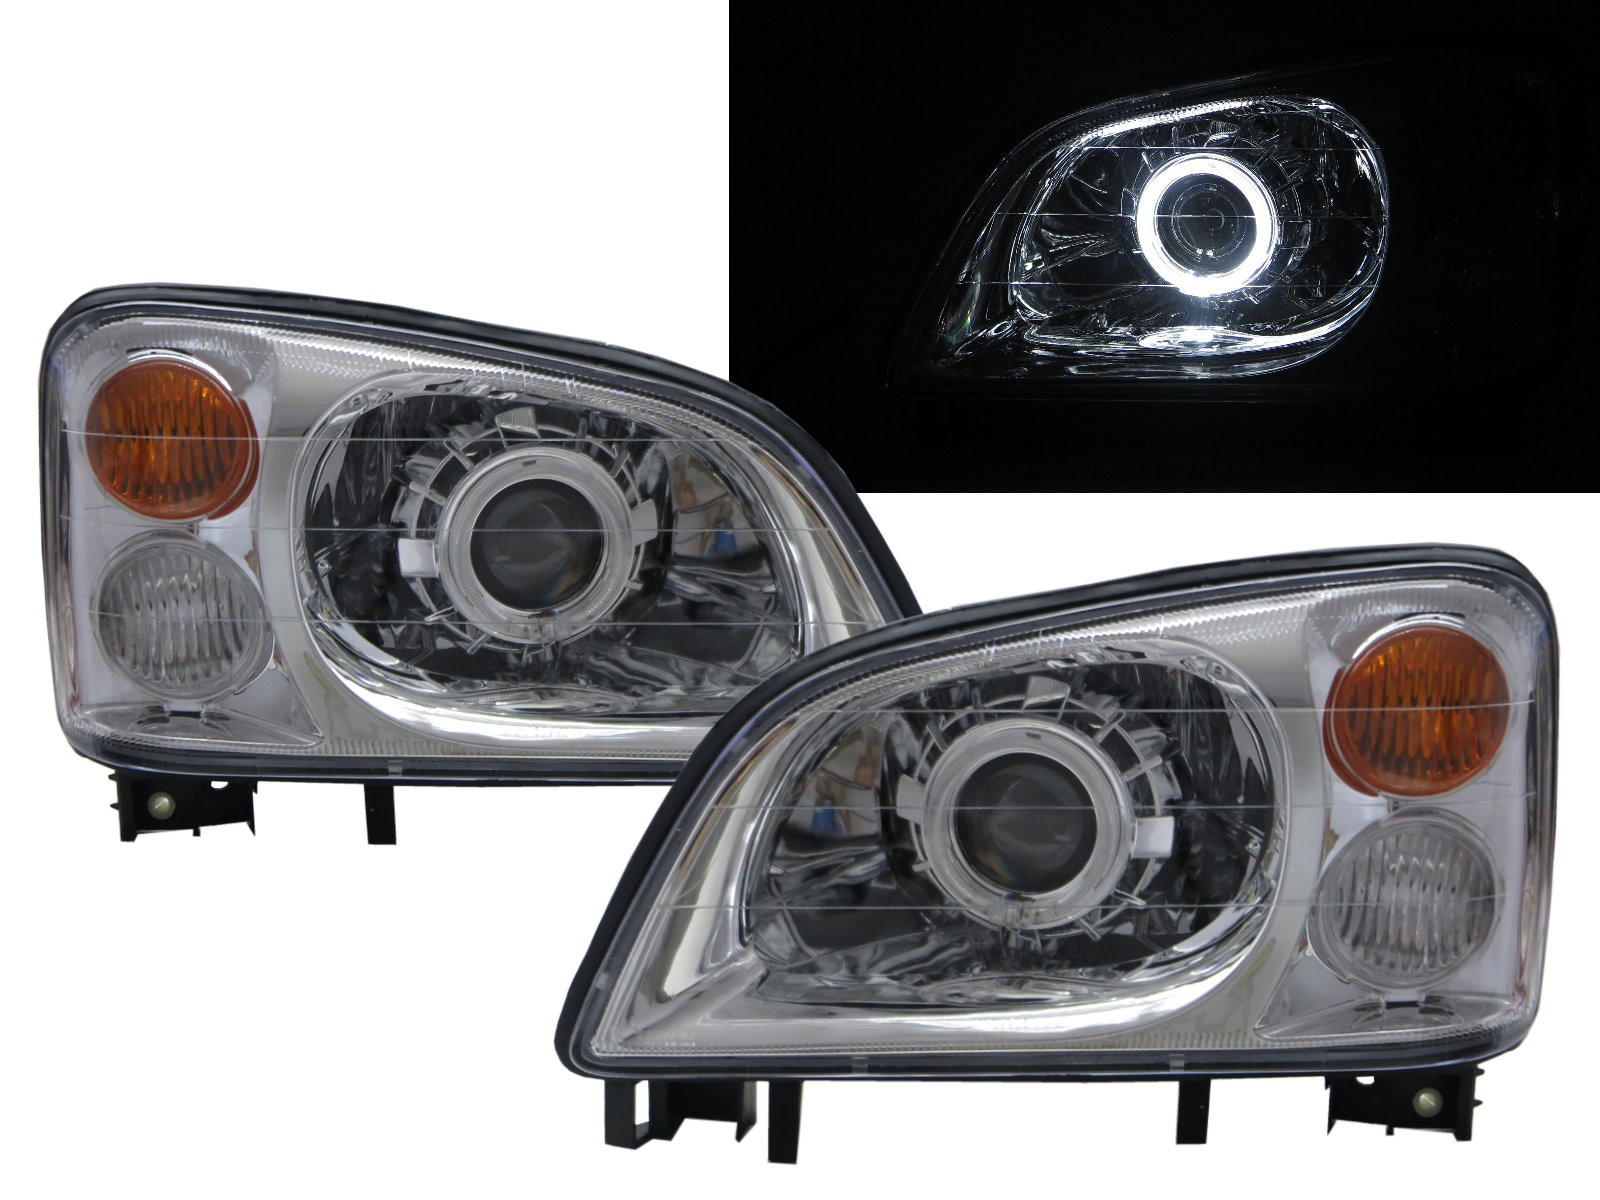 CrazyTheGod Veryca 2000-2009 Truck 2D/4D Guide LED Angel-Eye Projector Headlight Headlamp Chrome for Mitsubishi LHD